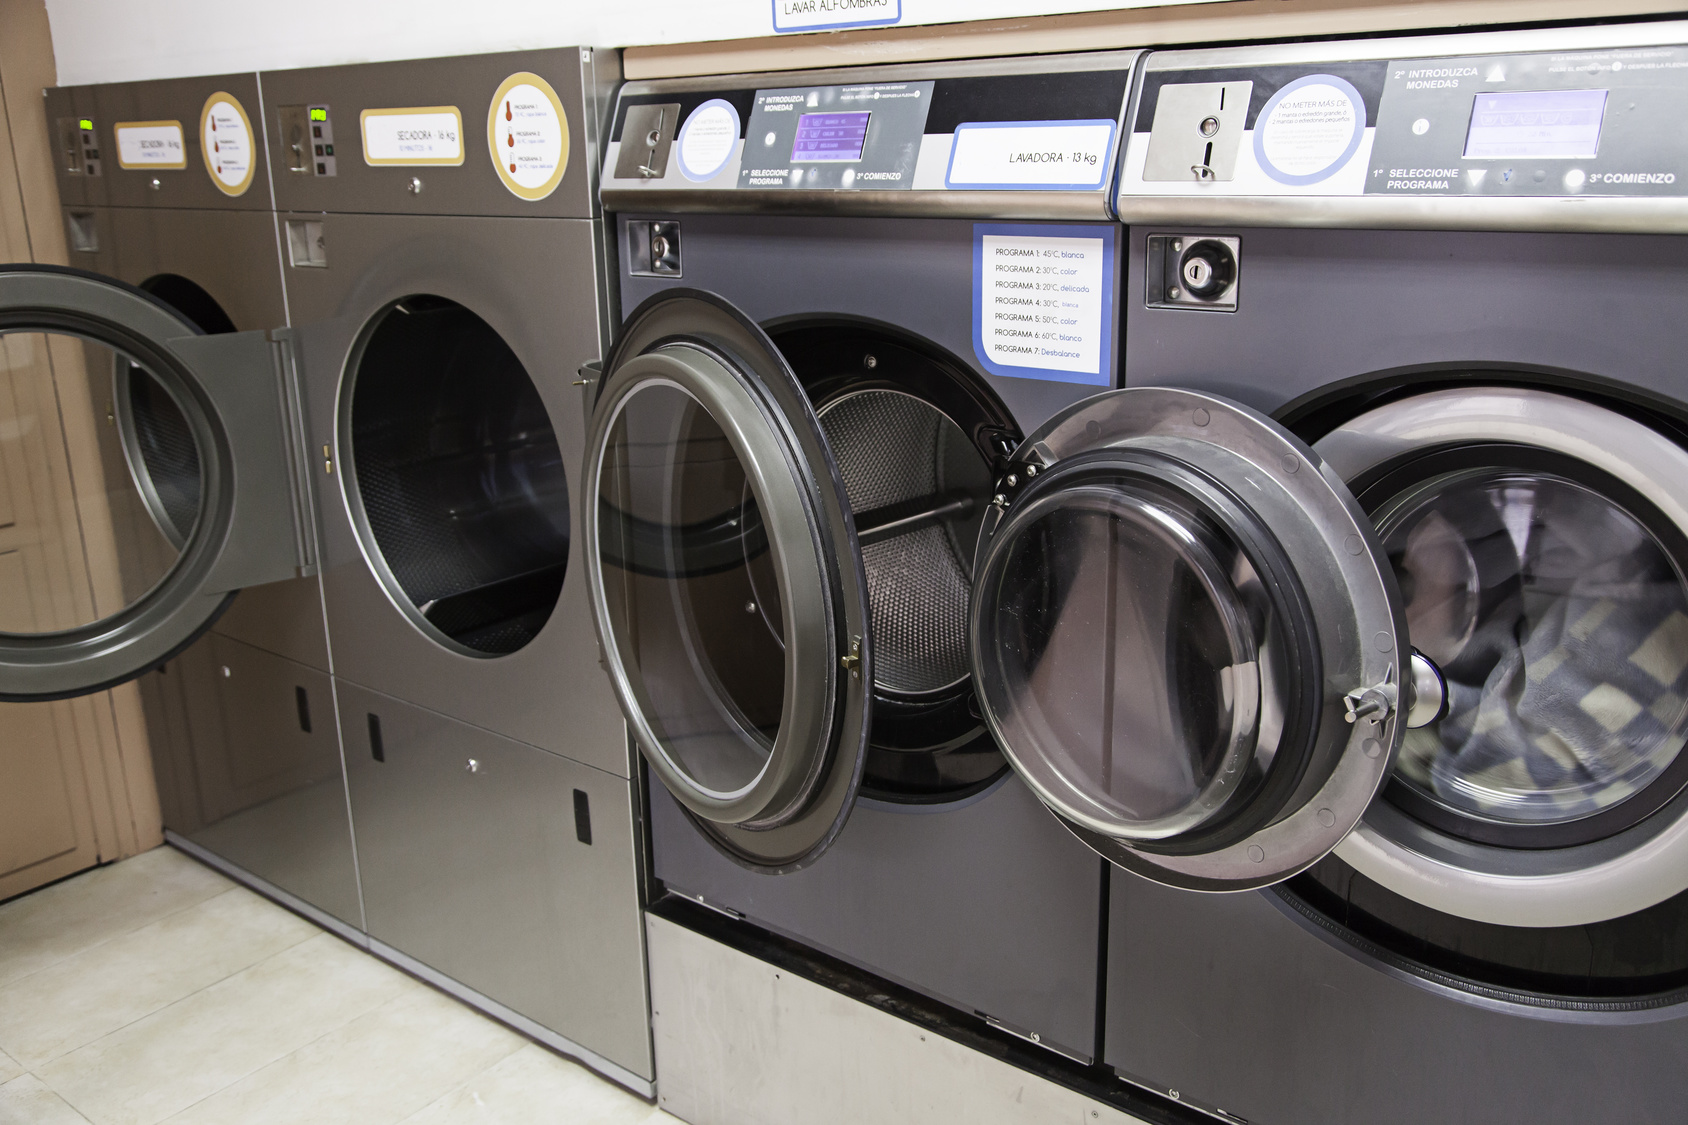 Urban Laundry, detail of a facility for washing clothes